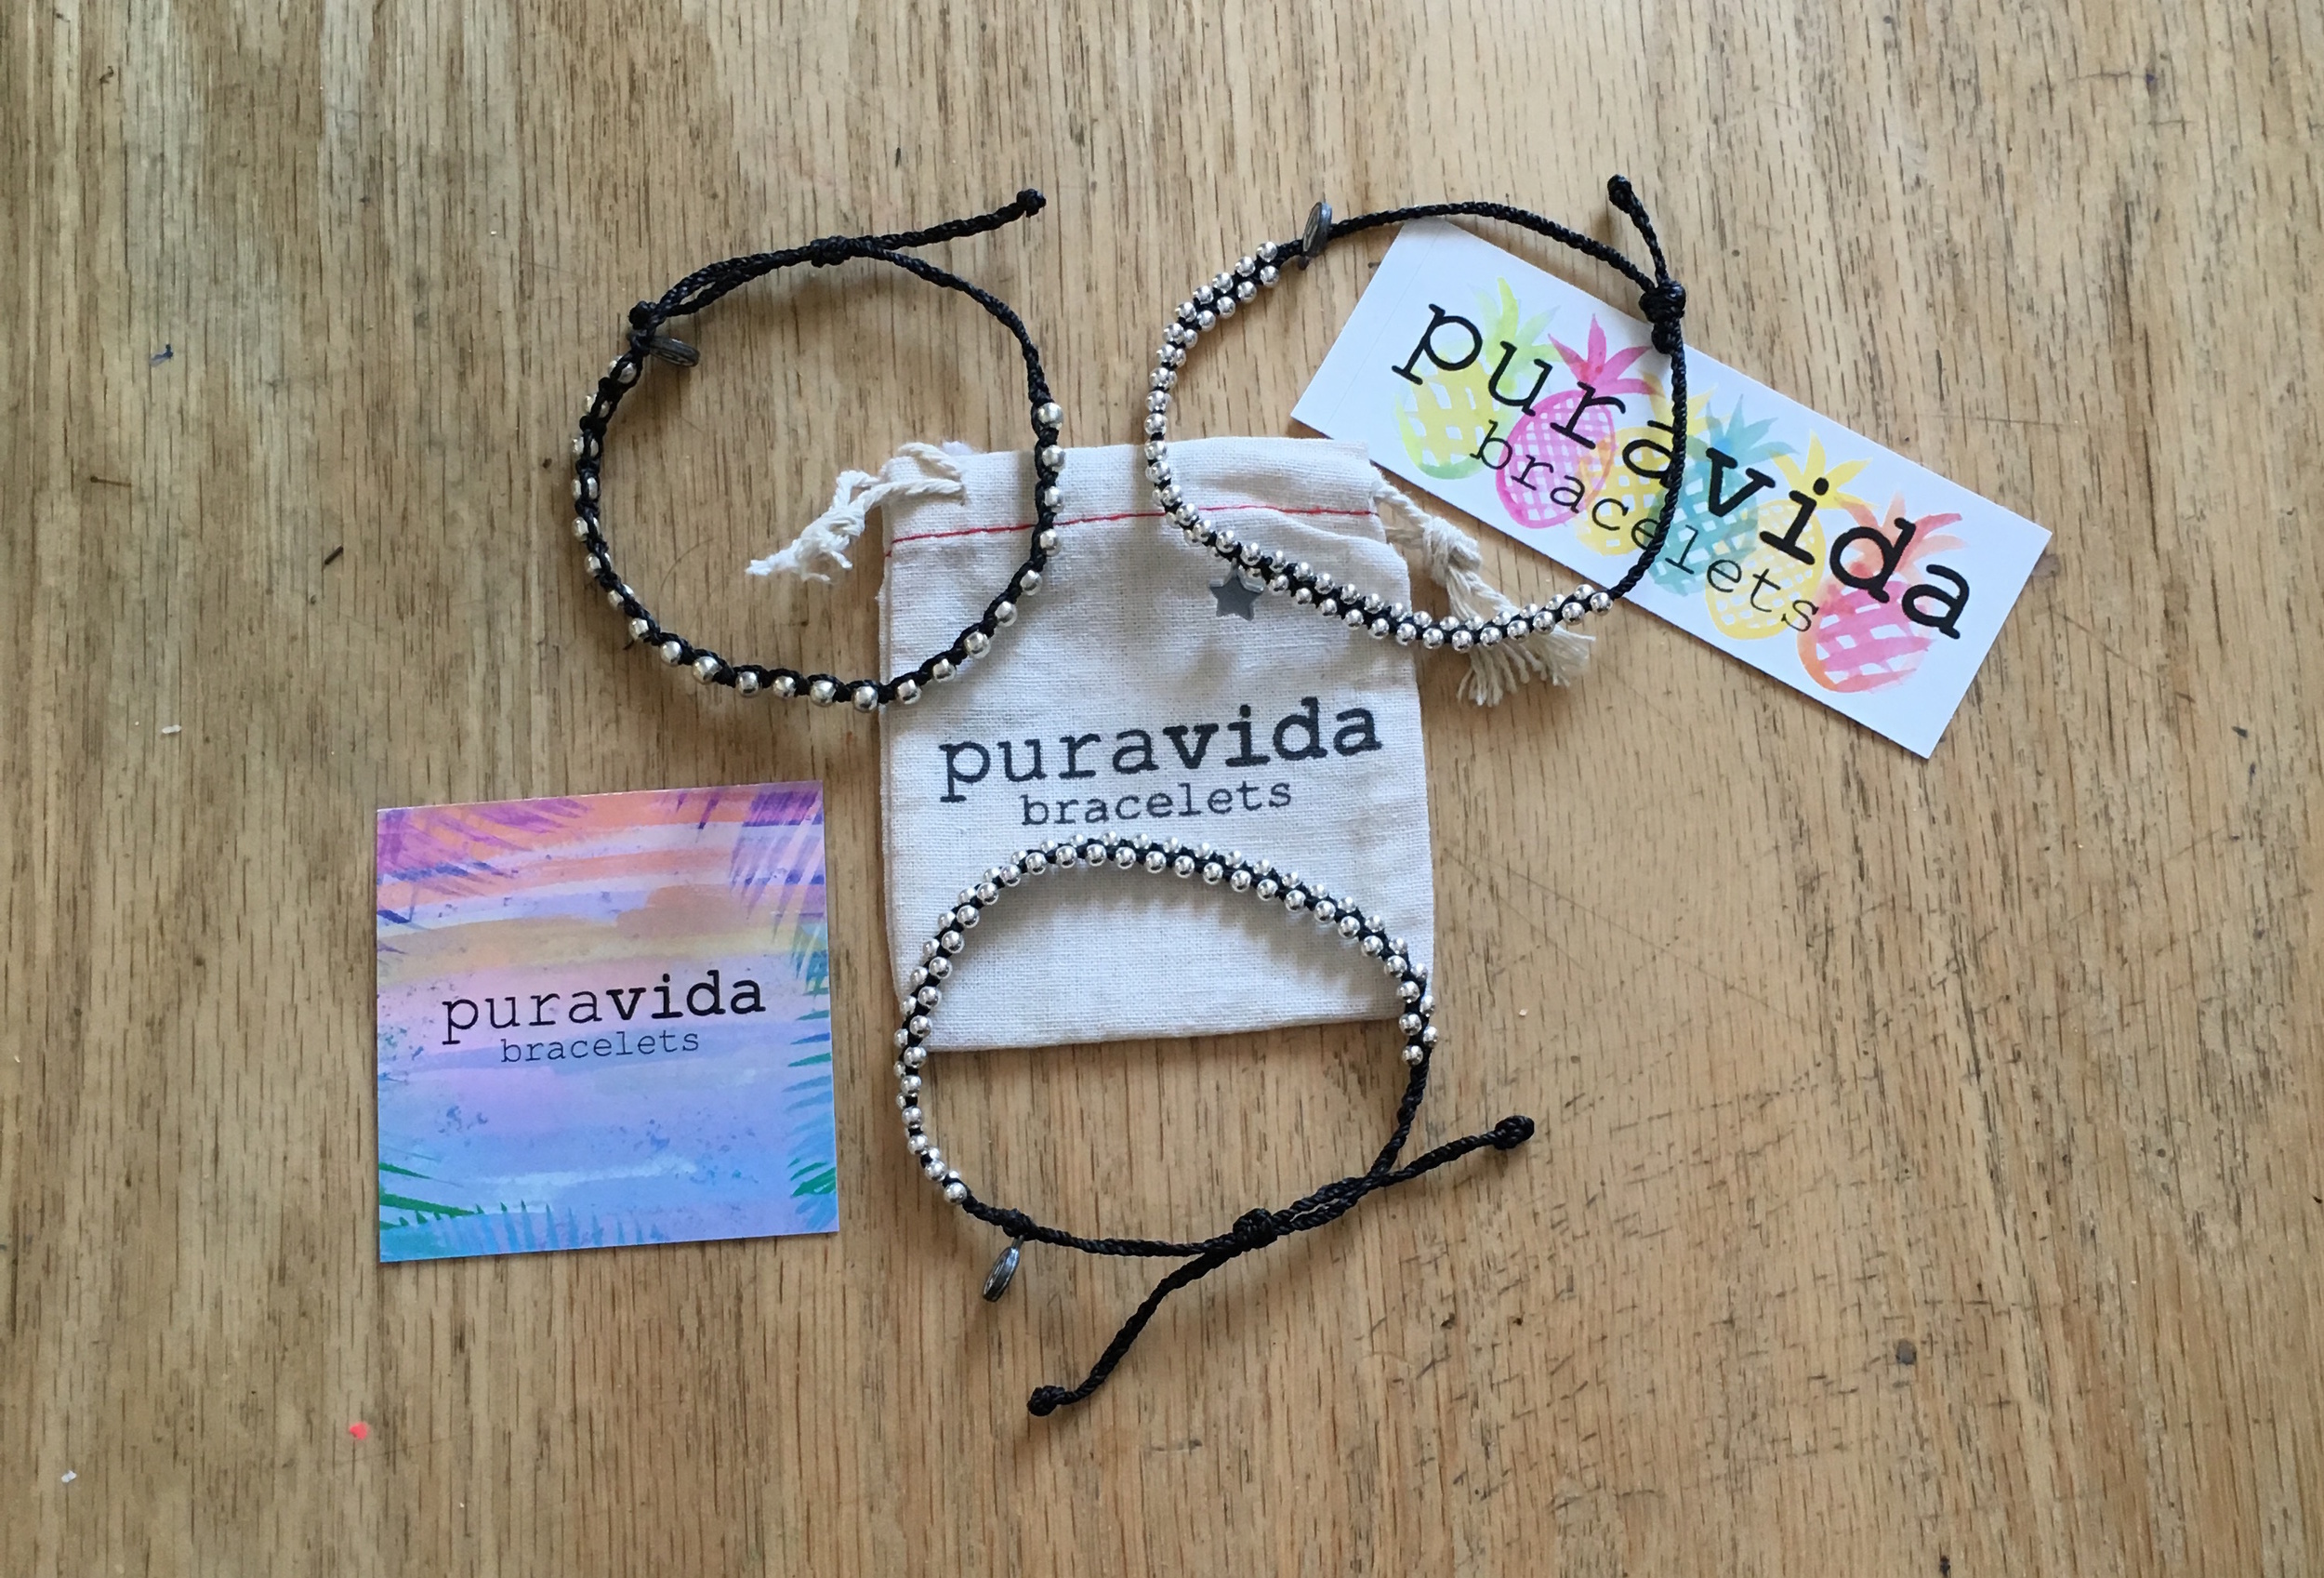 My mom bought some Pura Vida Bracelets for herself. Clockwise from left:  Black Studded .  Track Bead w/ Silver Bitty Star Black .  Silver Track Bead Black .